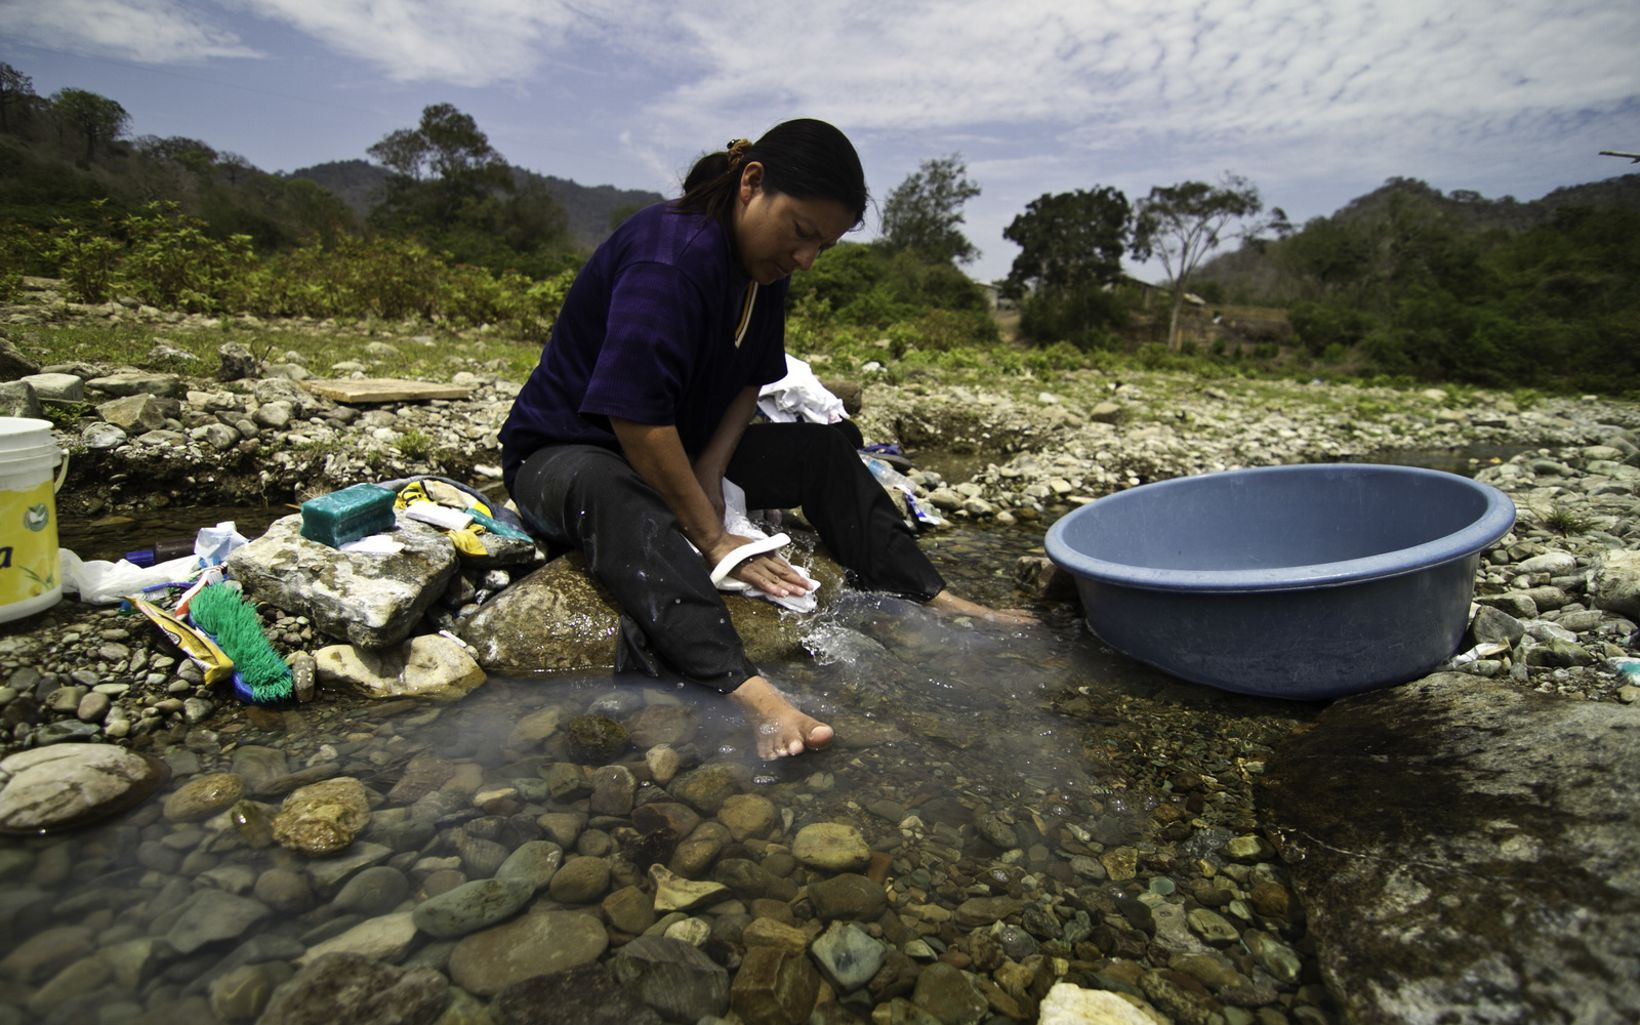 A woman washes clothes in the Ayampe River in Ecuador's Manabí Province. The Ayampe River has many responsibilities beyond its ecological role. It also supports the life of the communities within its watershed. The Conservancy is working with local partners to develop a water fund to help protect this water source.